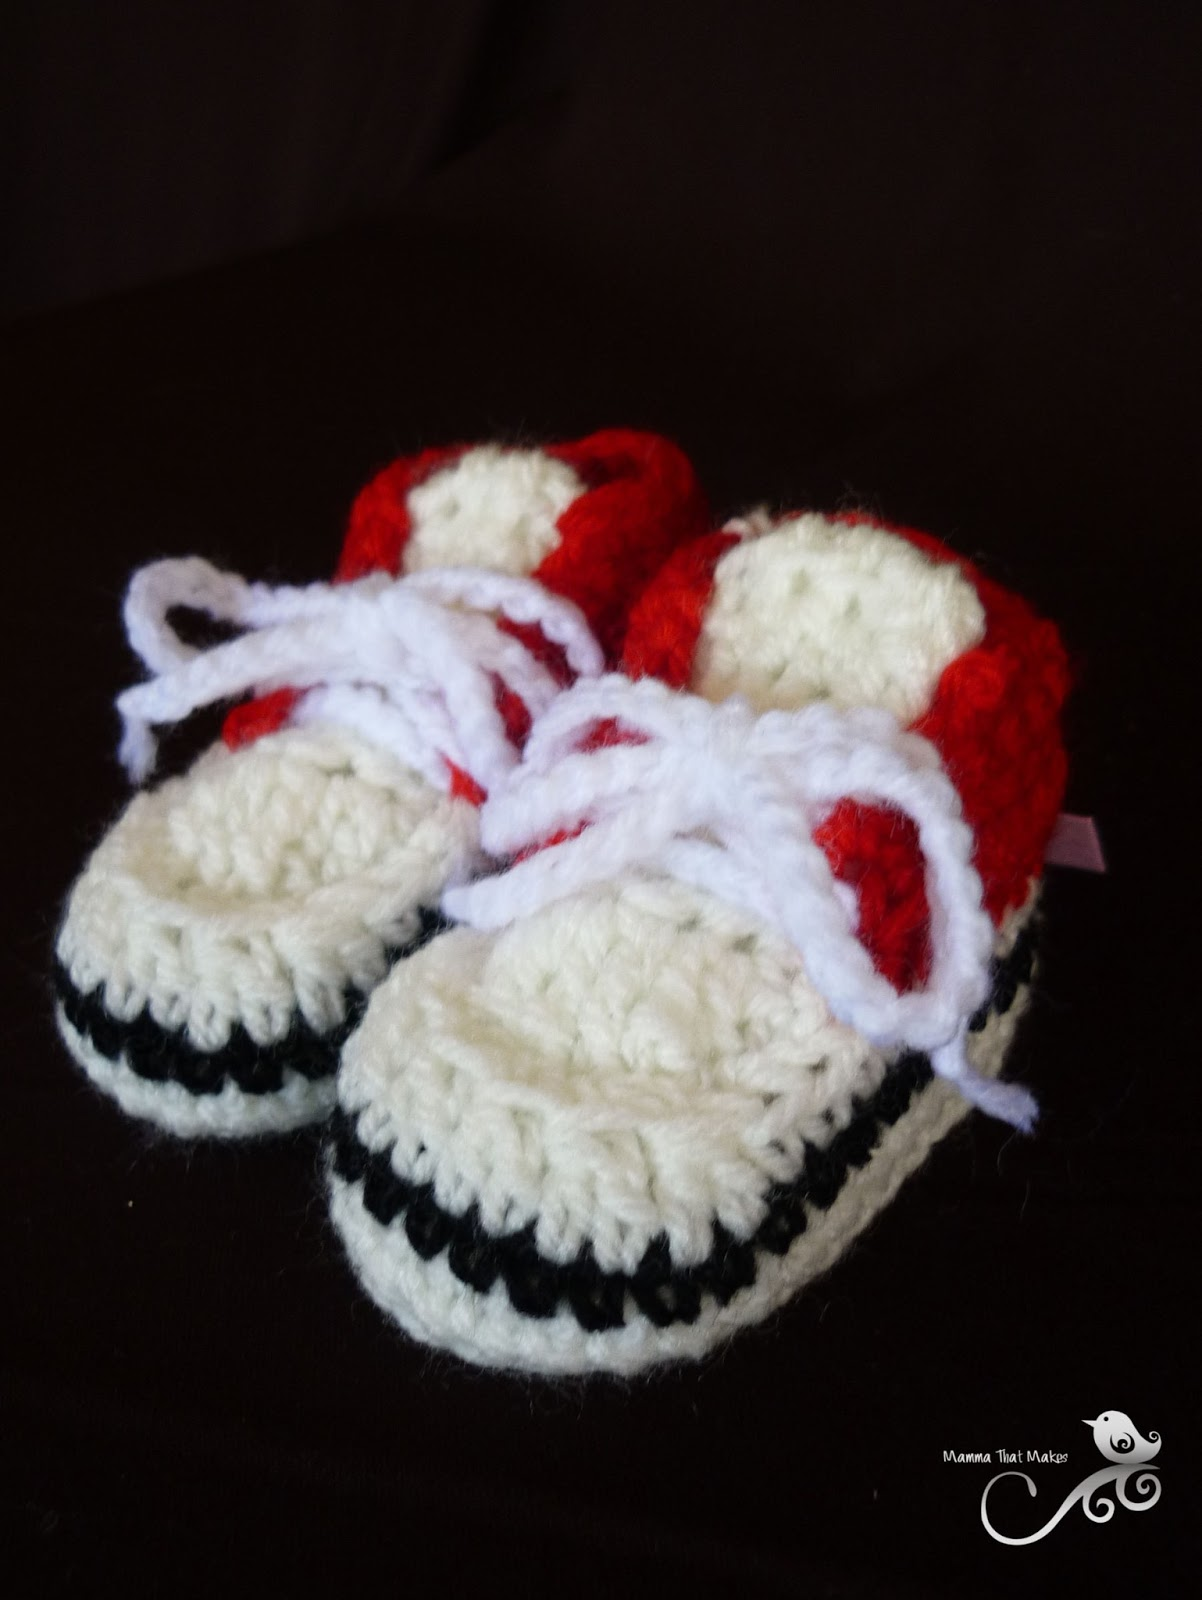 Free Crochet Pattern For Baby Tennis Shoes : Mamma That Makes: Crocheted Baby Sneakers - Free Pattern